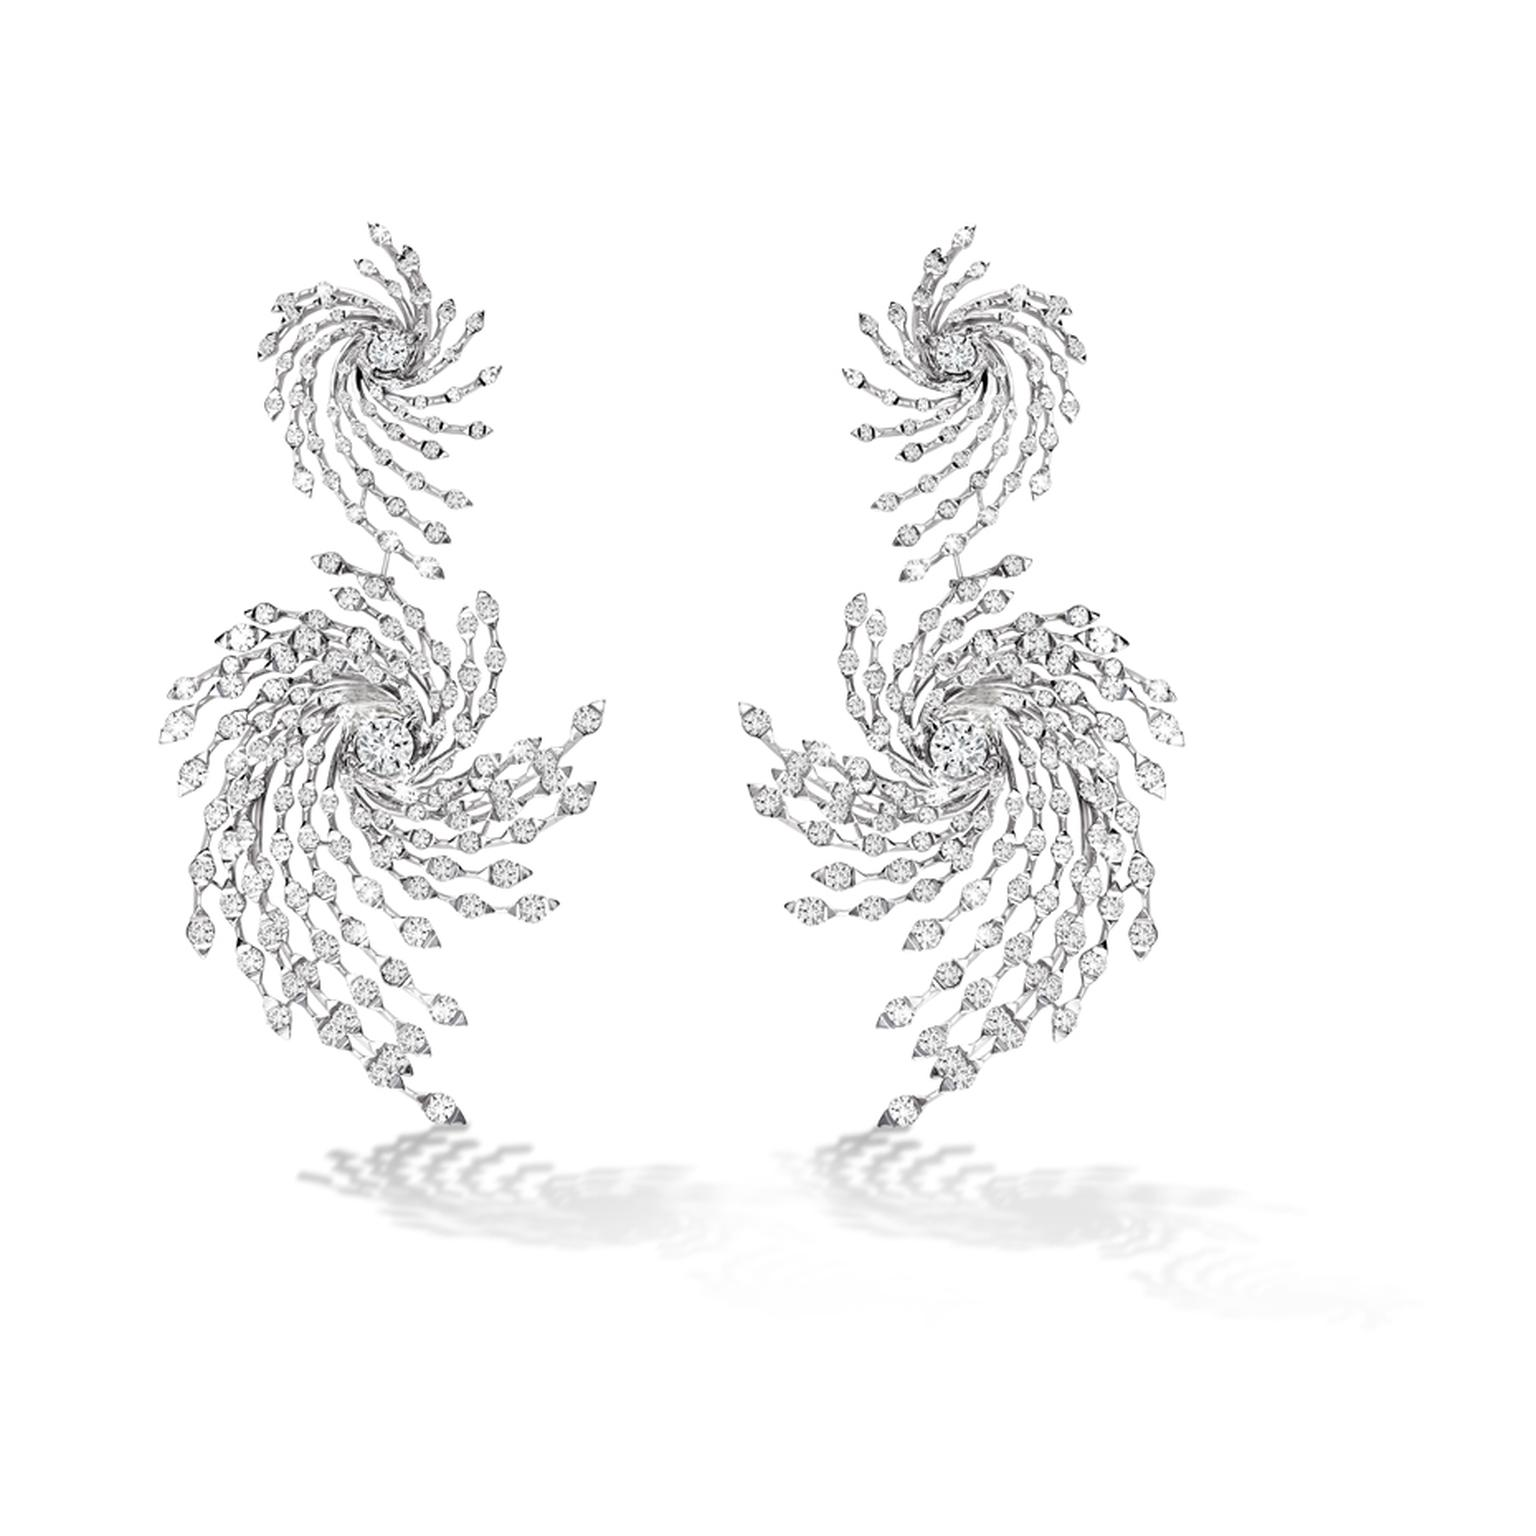 Brilliant-cut diamond Asprey Storm earrings in white gold